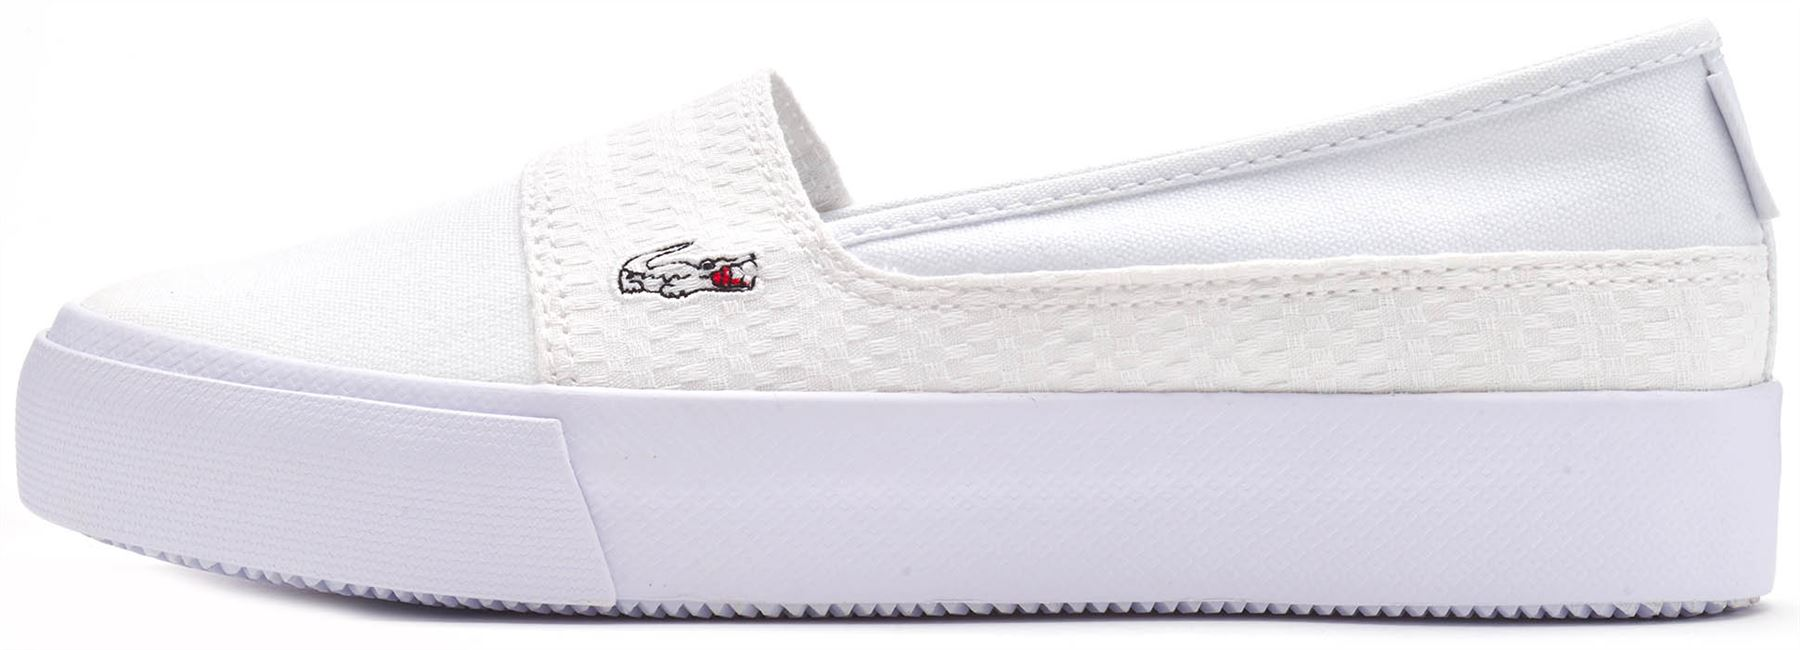 a370d4e82 Description Lacoste Marice Plus Grand 119 2 CFA Canvas Women Platform Slip  On Trainers A stylish resort slip-on demonstrating a hand-crafted quality  ...